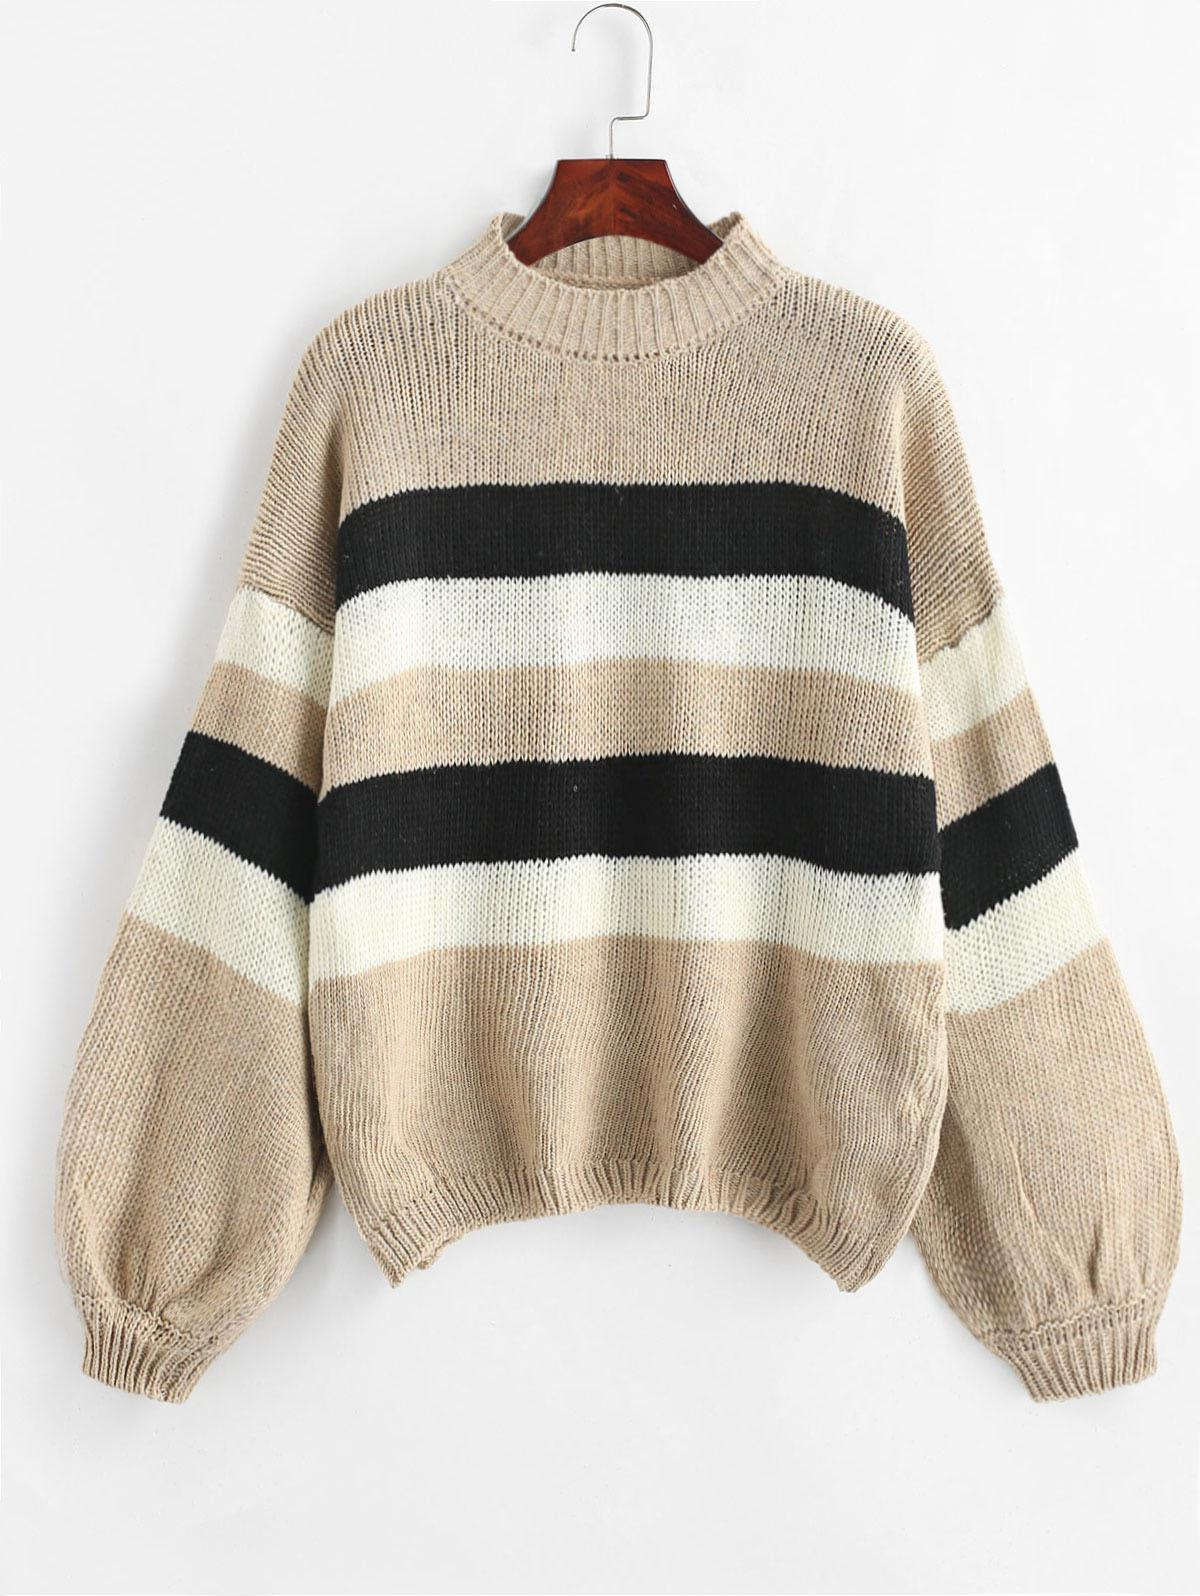 Lantern Sleeve Stripes Pullover Sweater, Camel brown